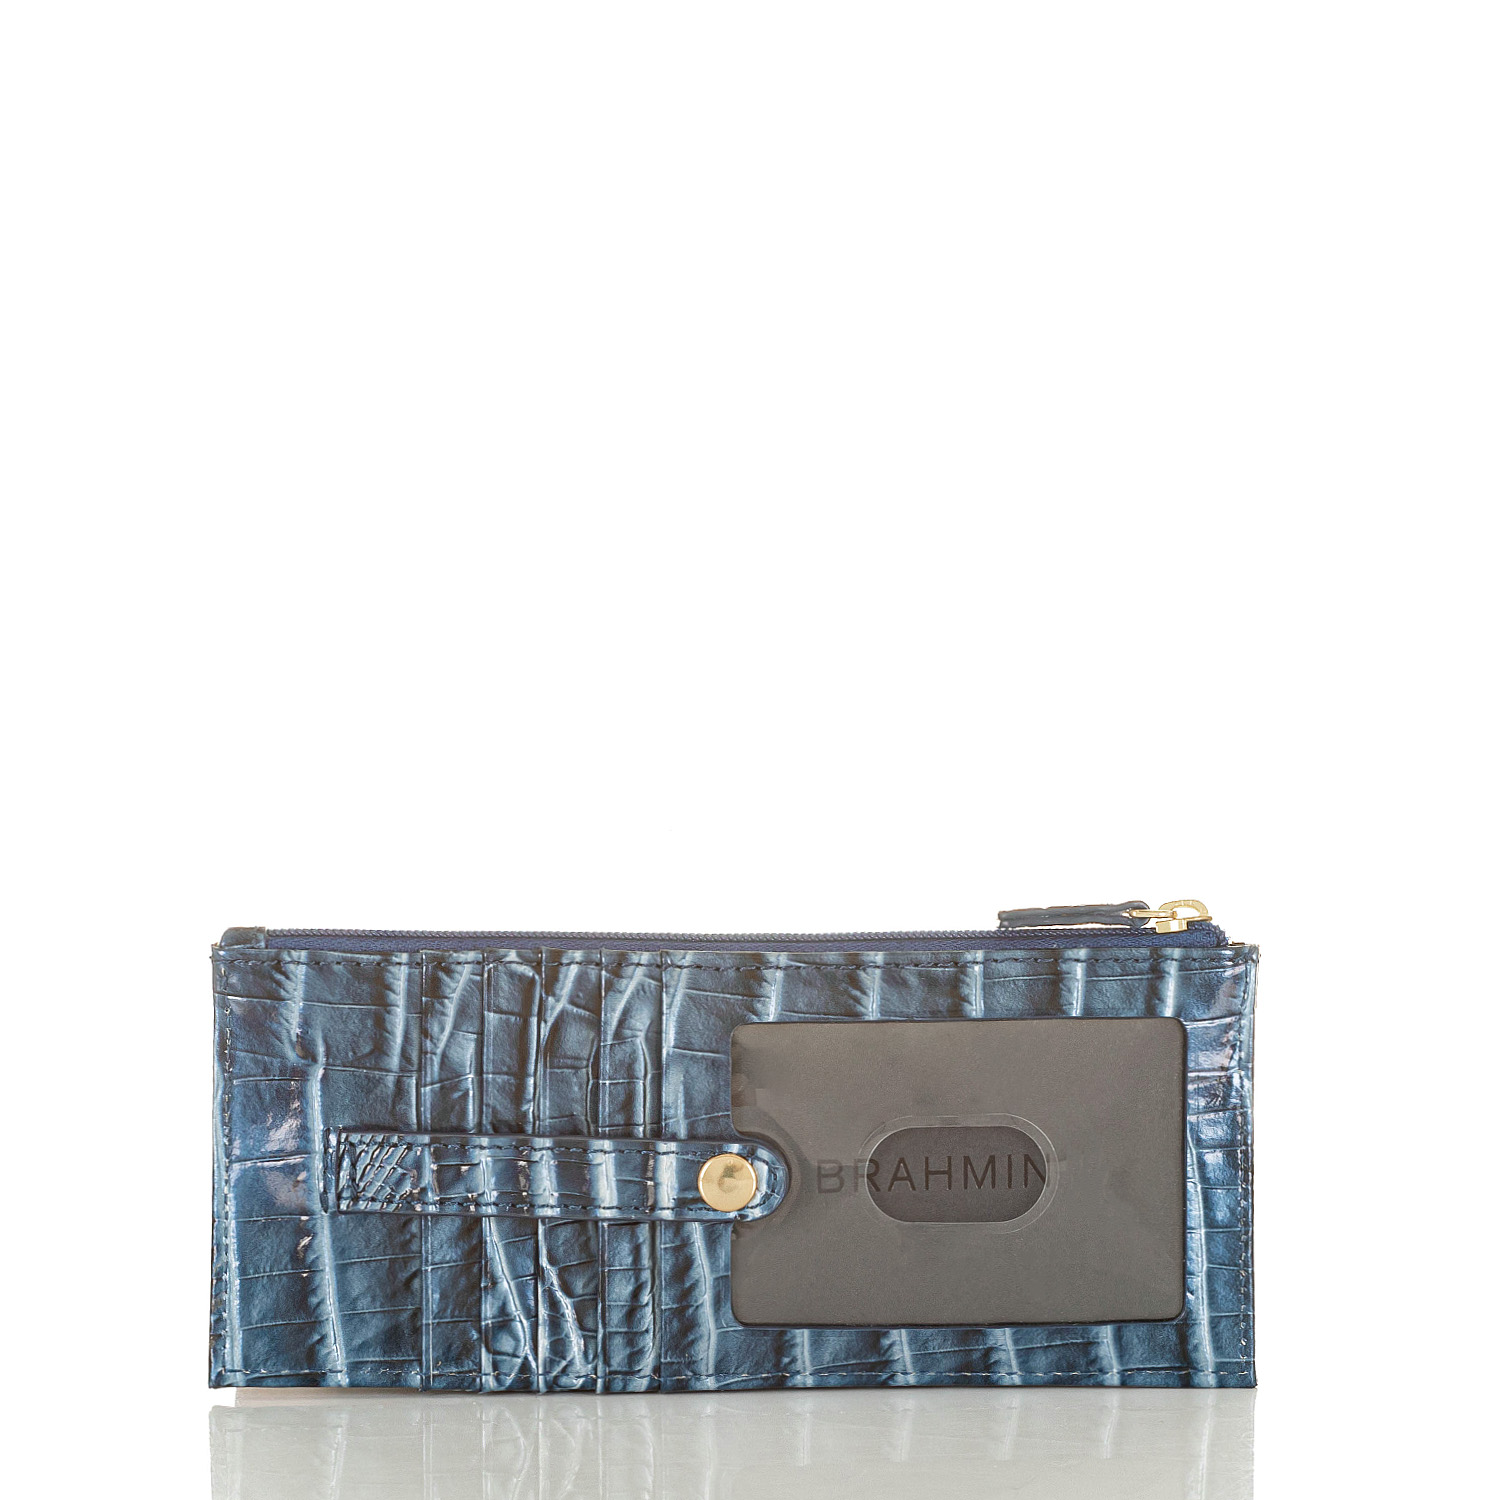 Credit Card Wallet Aquarius Melbourne